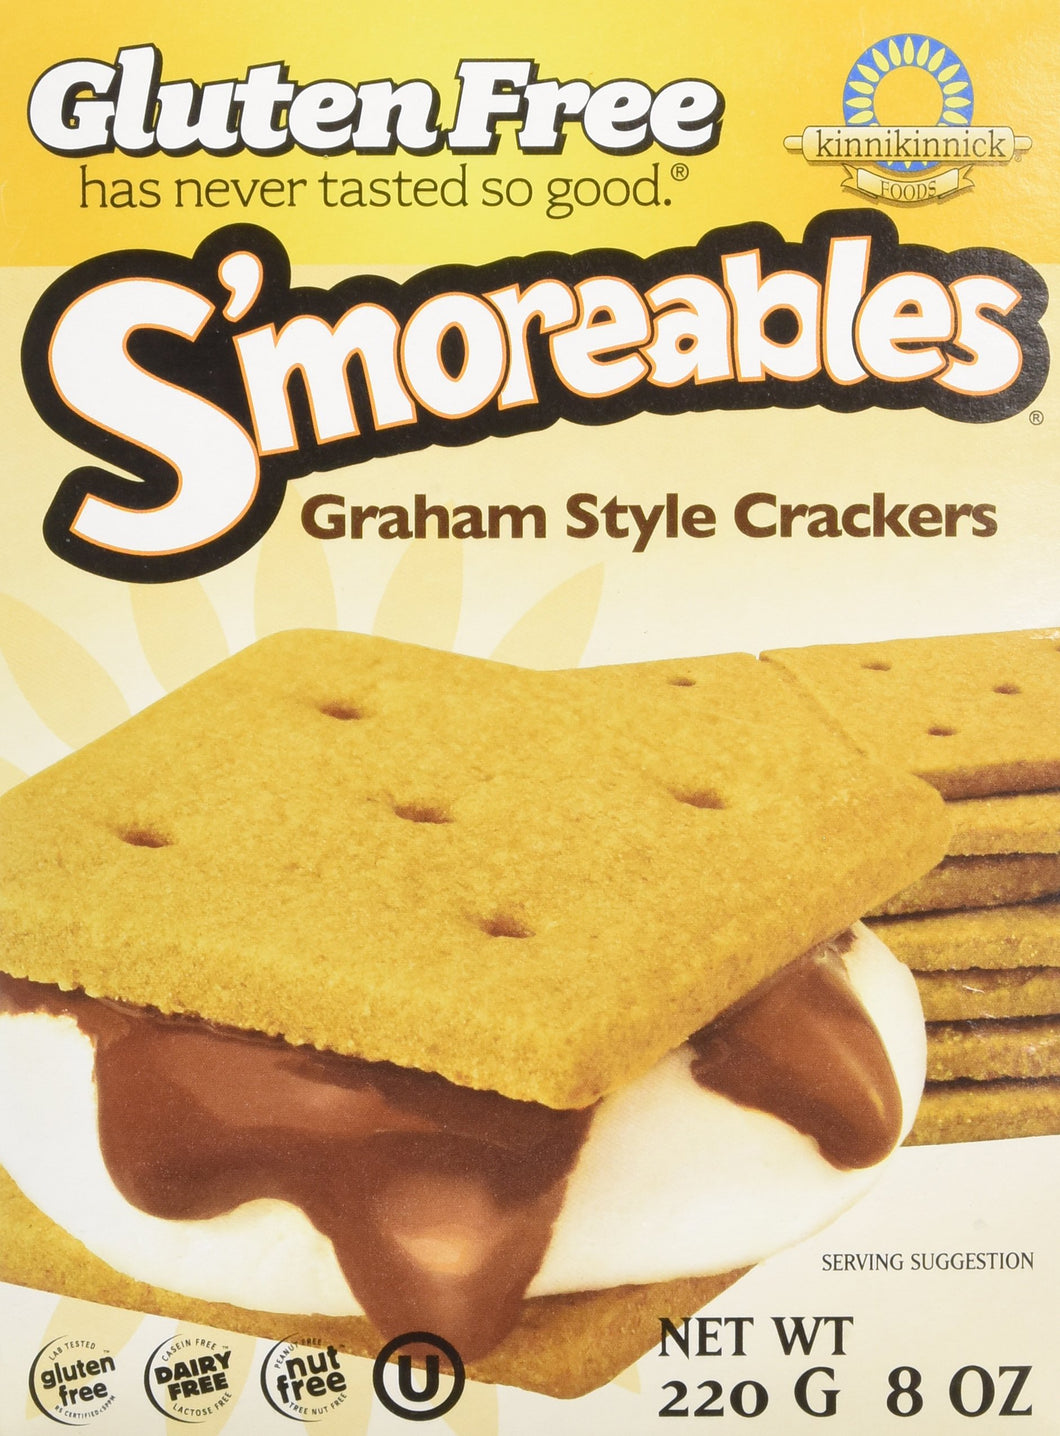 Kinnikinnick S'moreables Graham Style Crackers - 8 oz - Vancelette Global Art Acquisitions